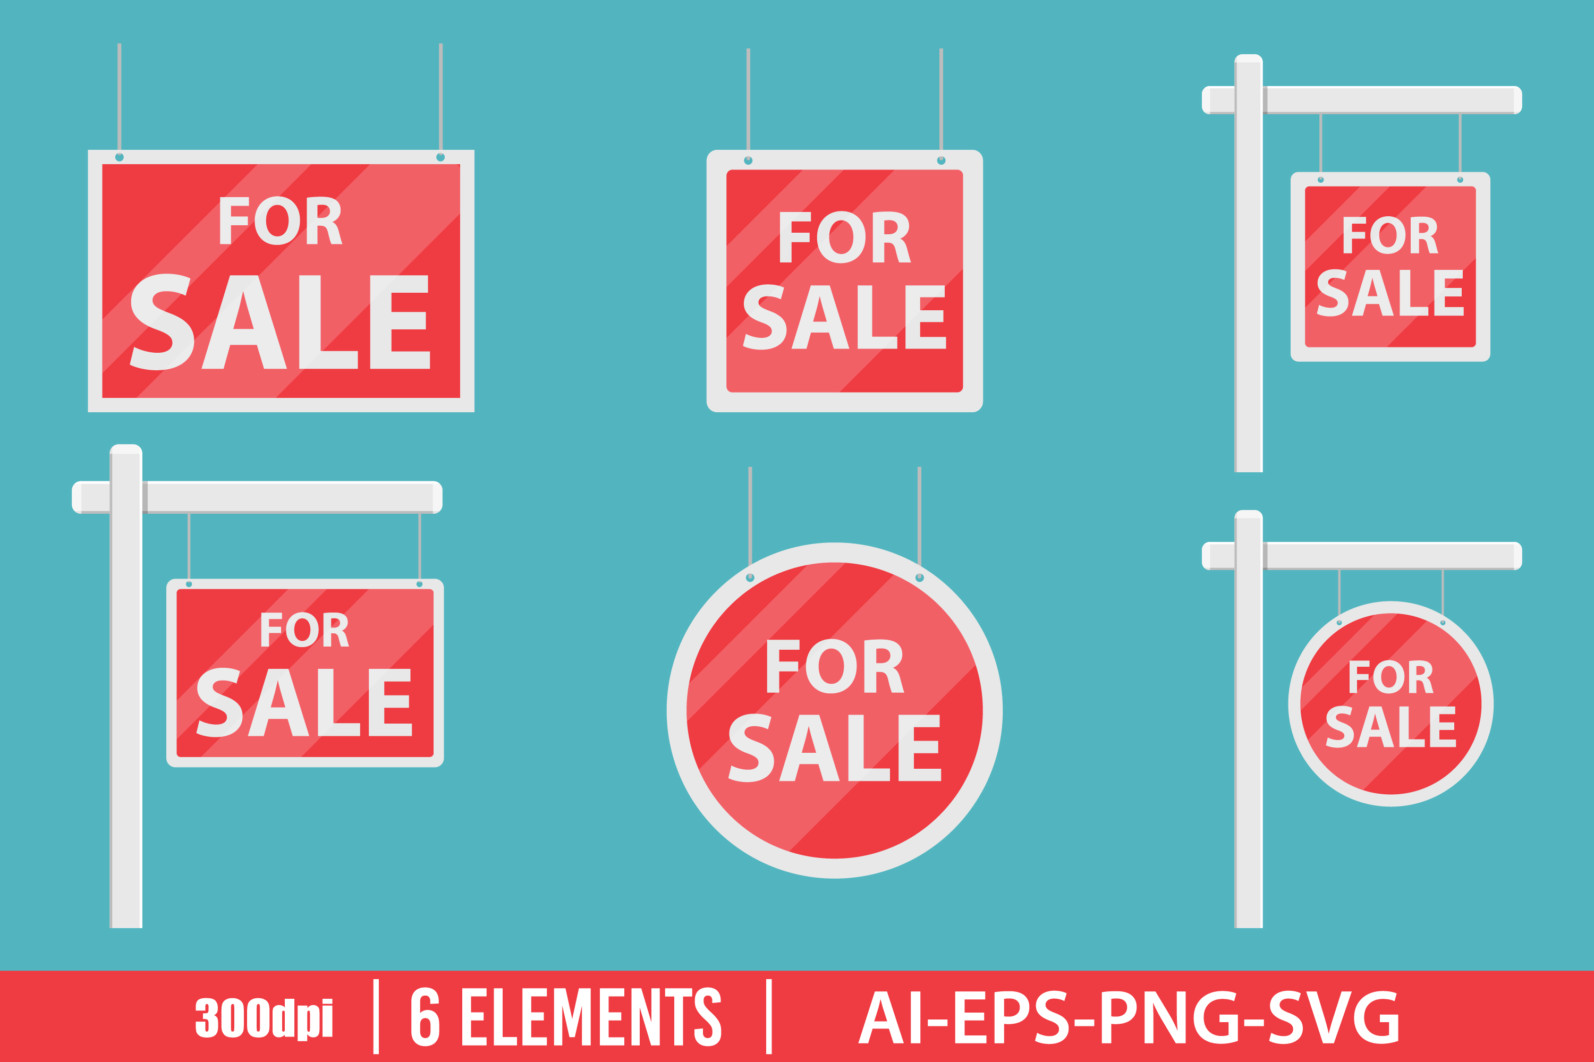 For sale house sign clipart vector design illustration. For sale sign set. Vector Clipart Print - FOR SALE scaled -